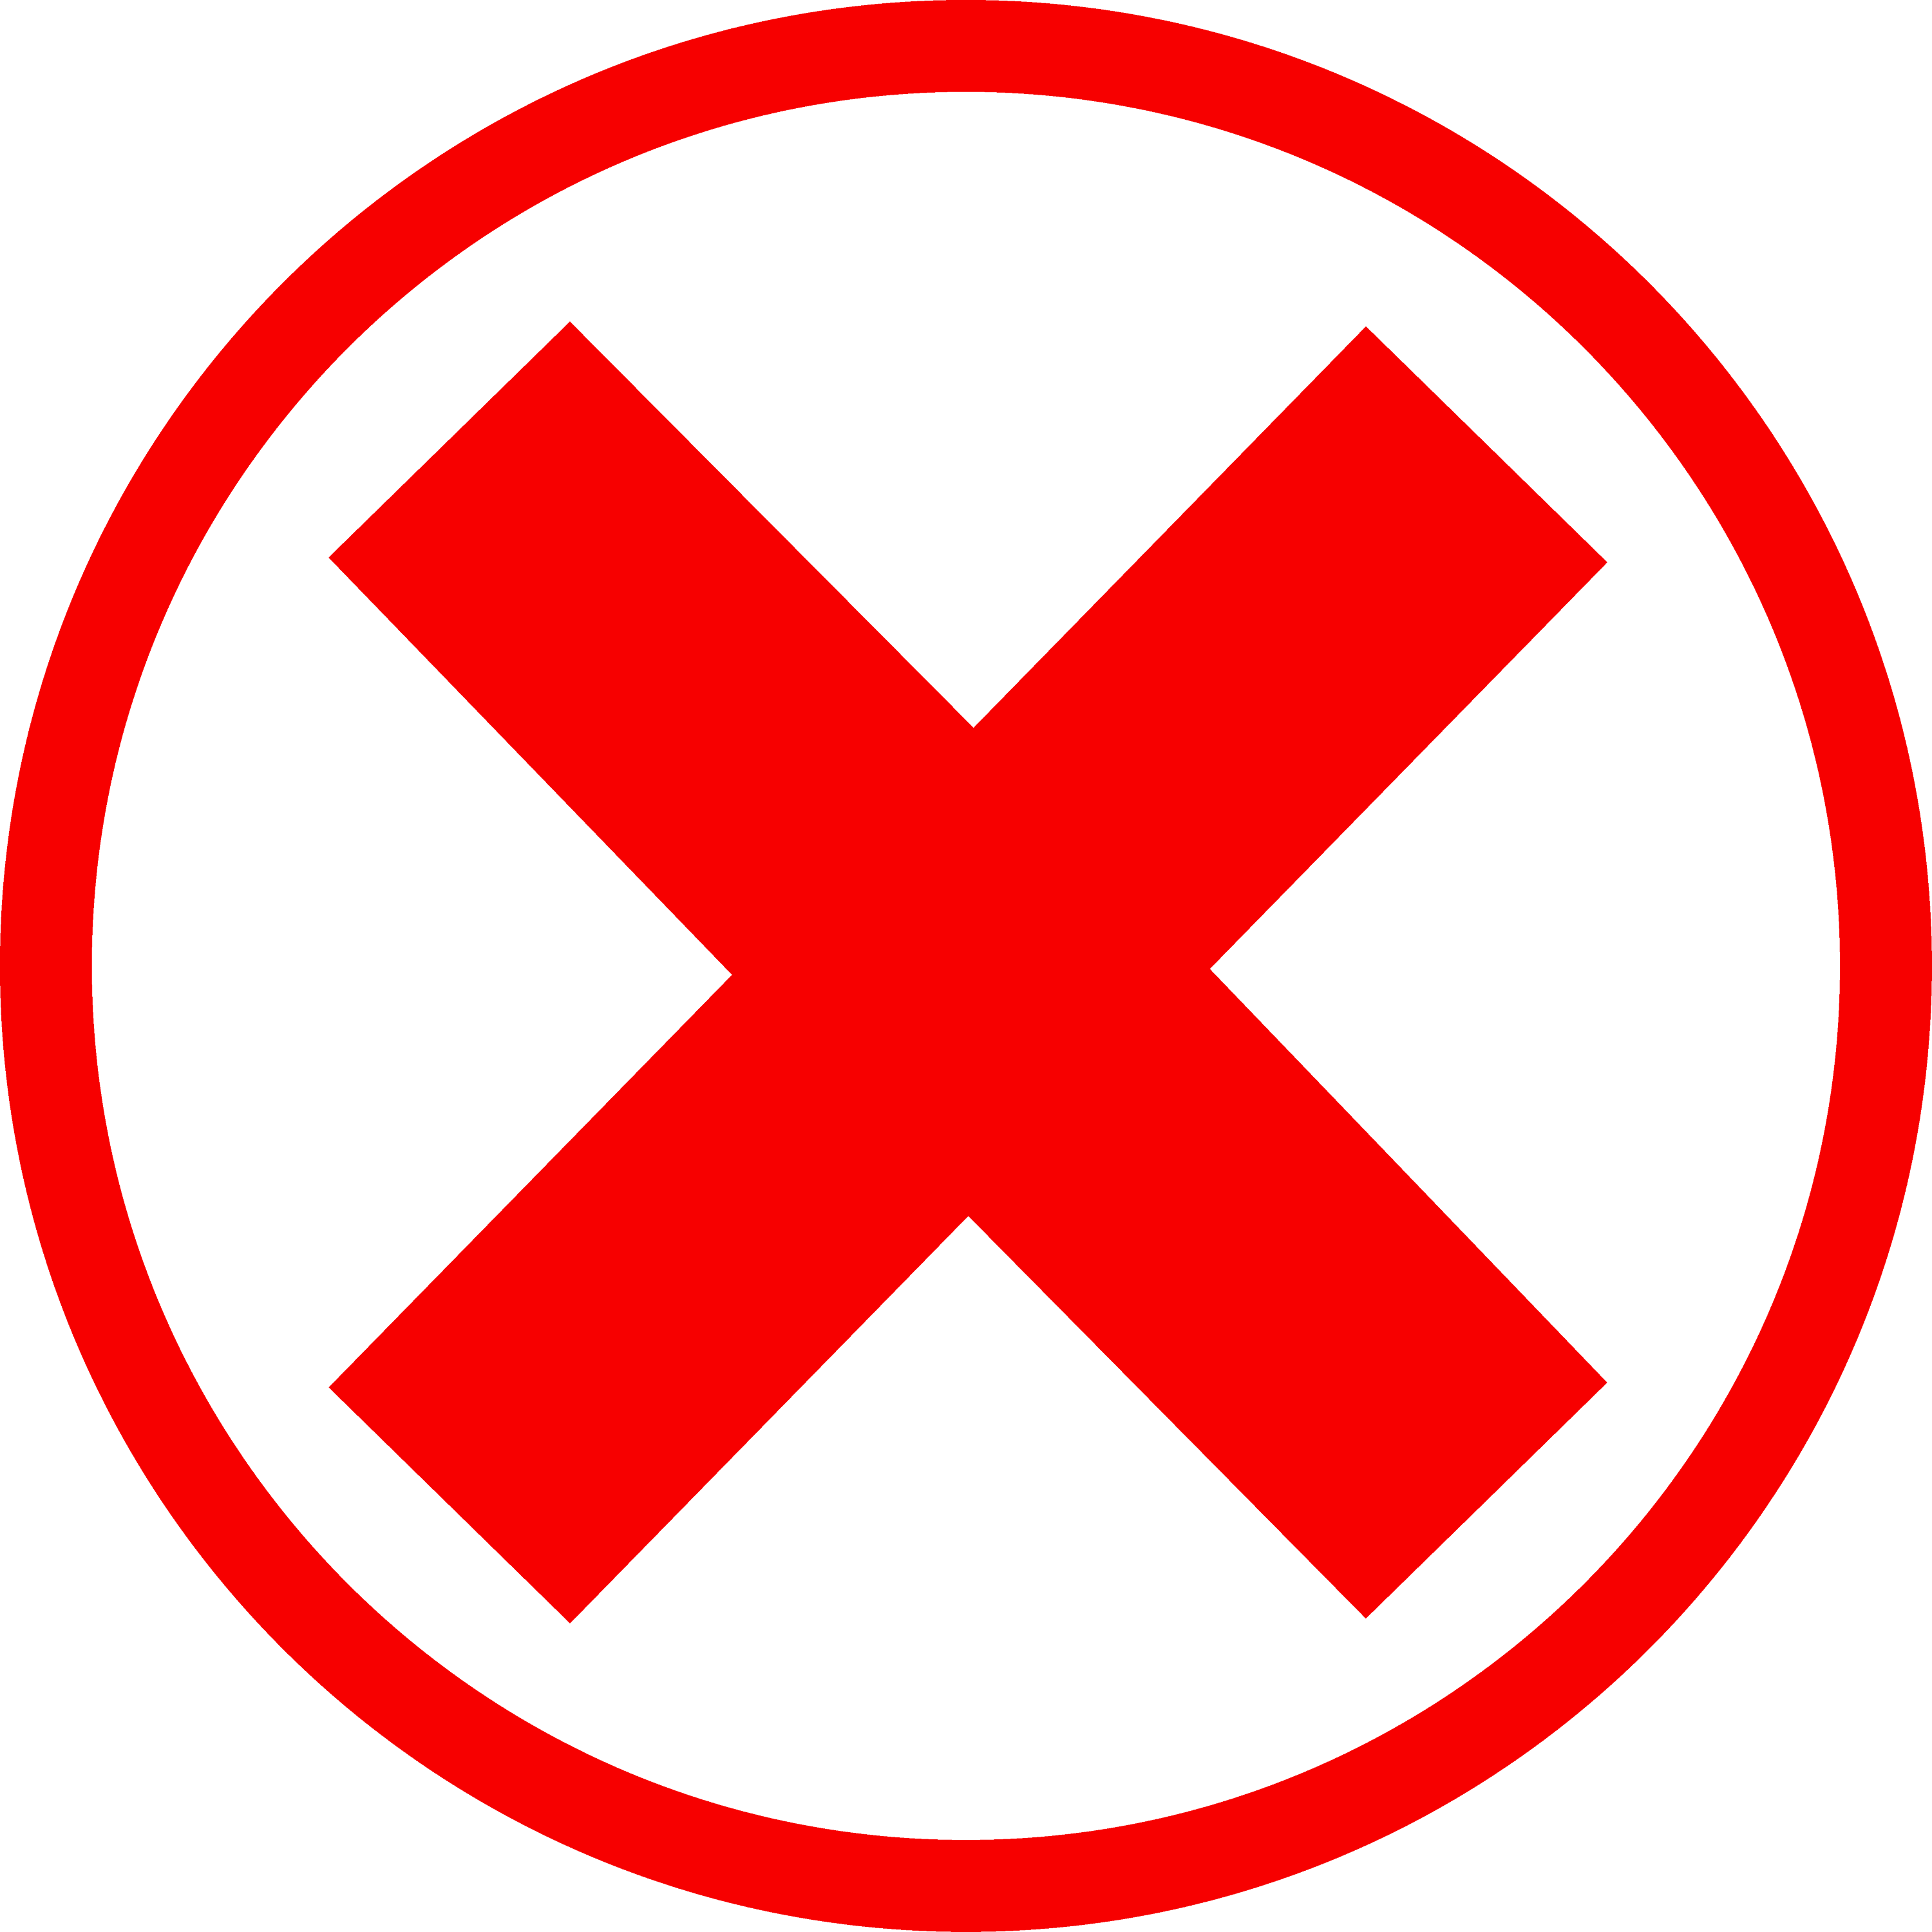 Red X Mark in Circle  X Clipart